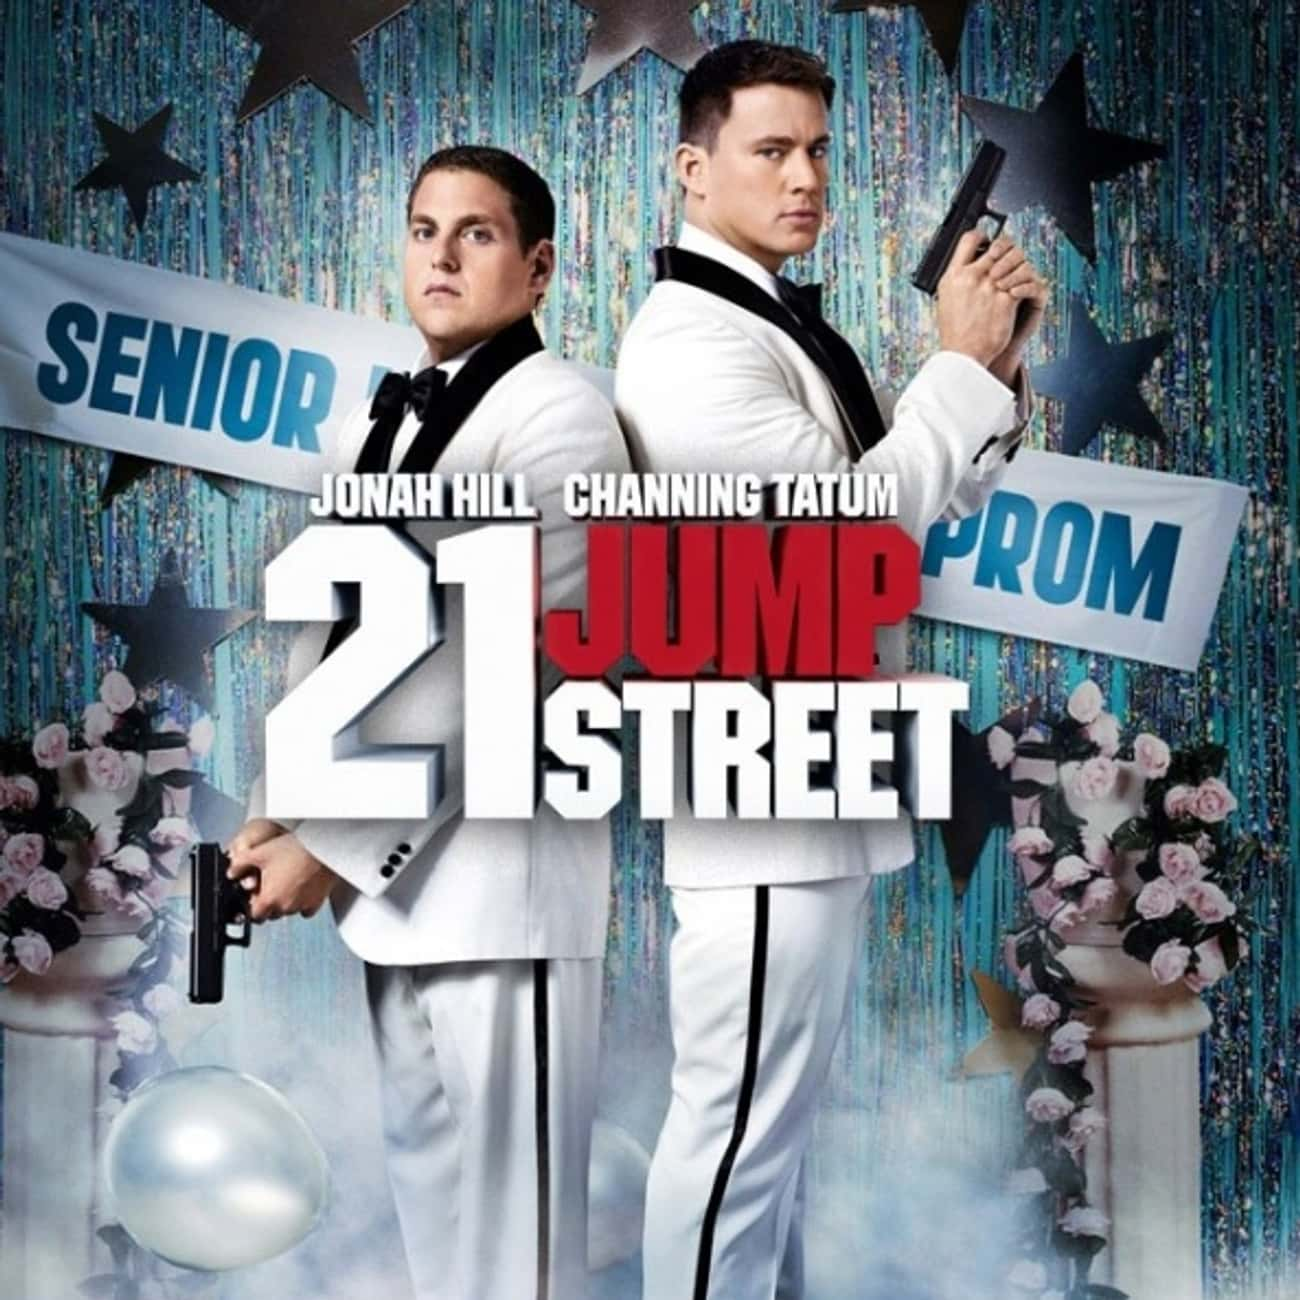 21 Jump Street is listed (or ranked) 1 on the list The Funniest Teen Parody Movies, Ranked